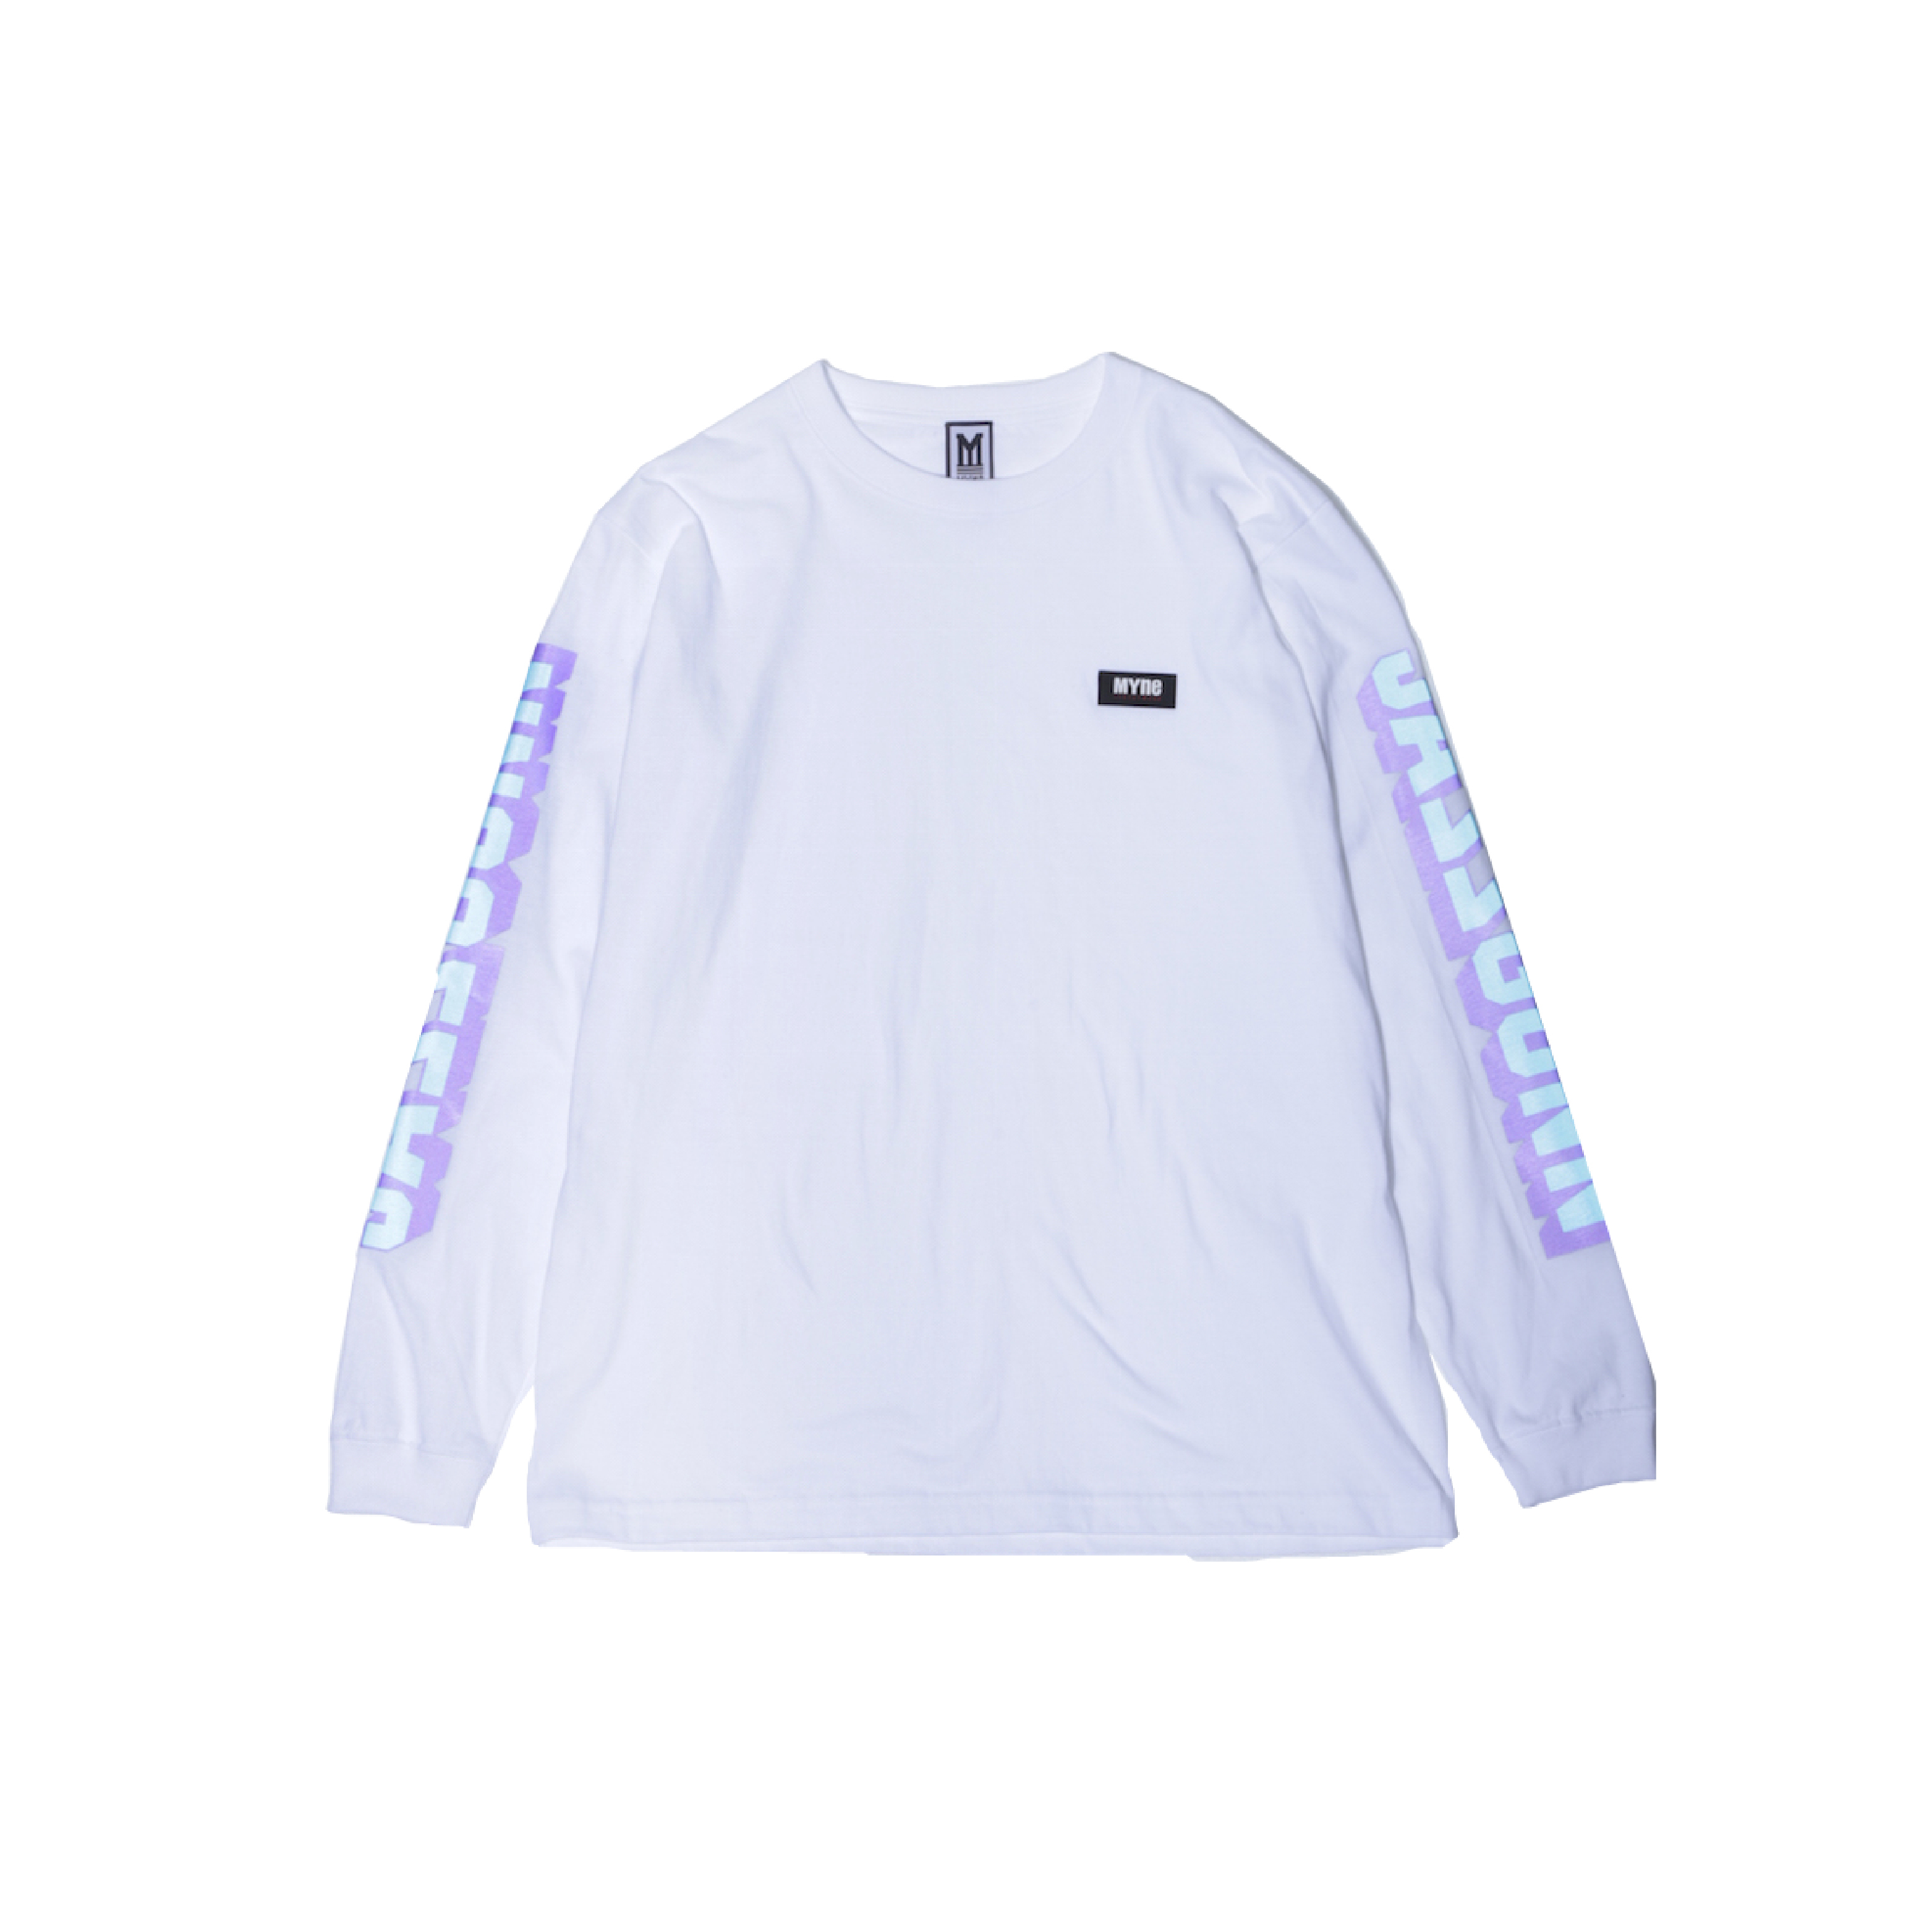 【20%OFF】JASS GUNN L/S T-shirt - 画像3